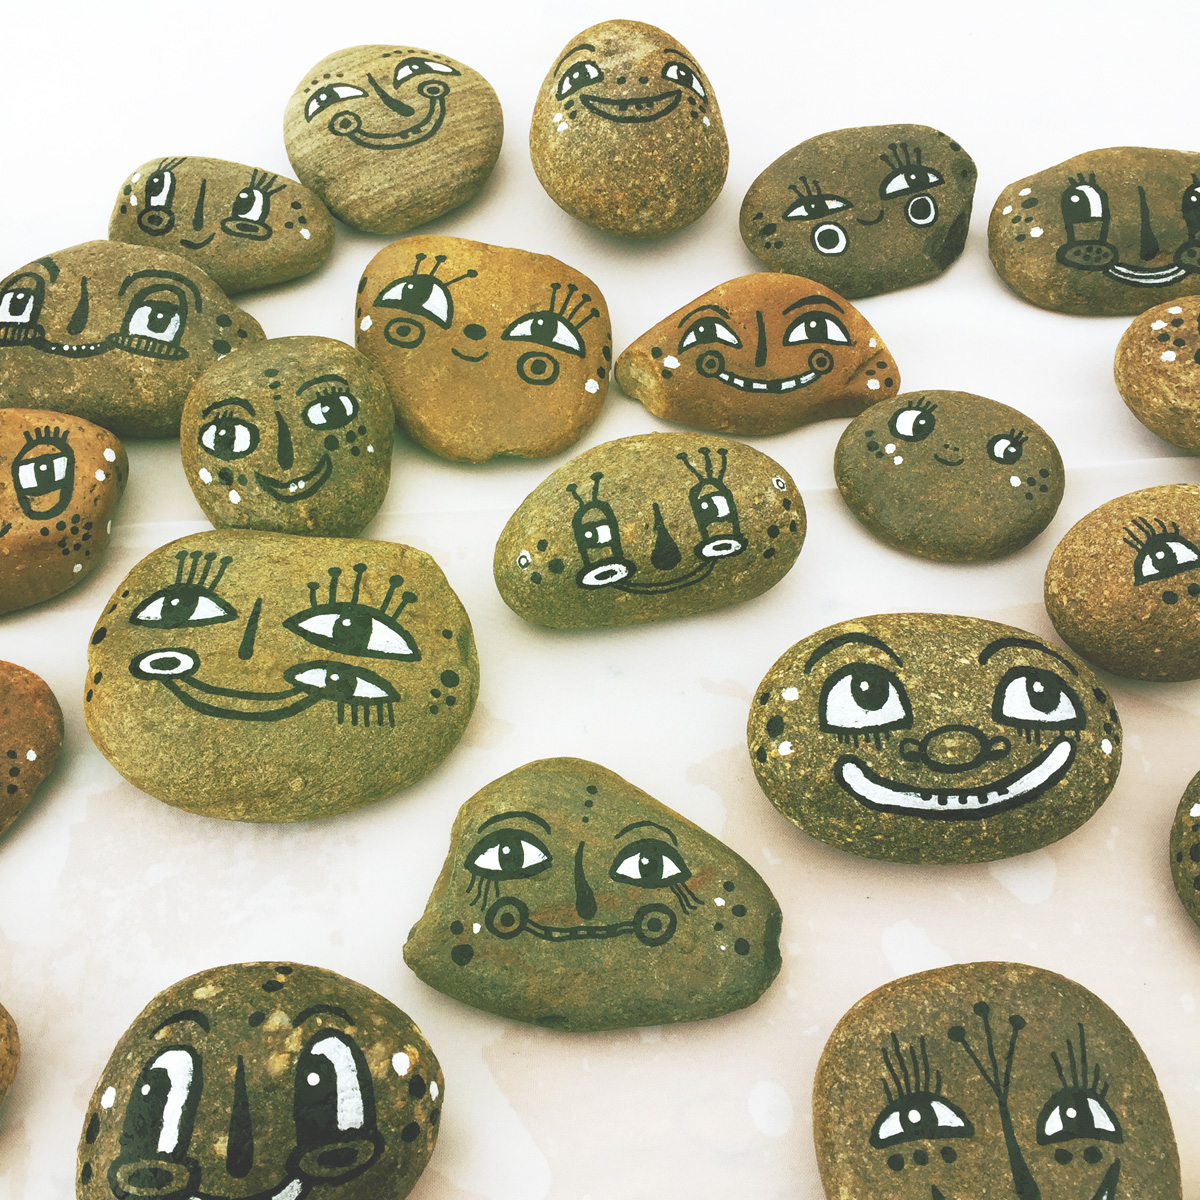 - BlackCatTips painted stones rocks faces.jpg -04